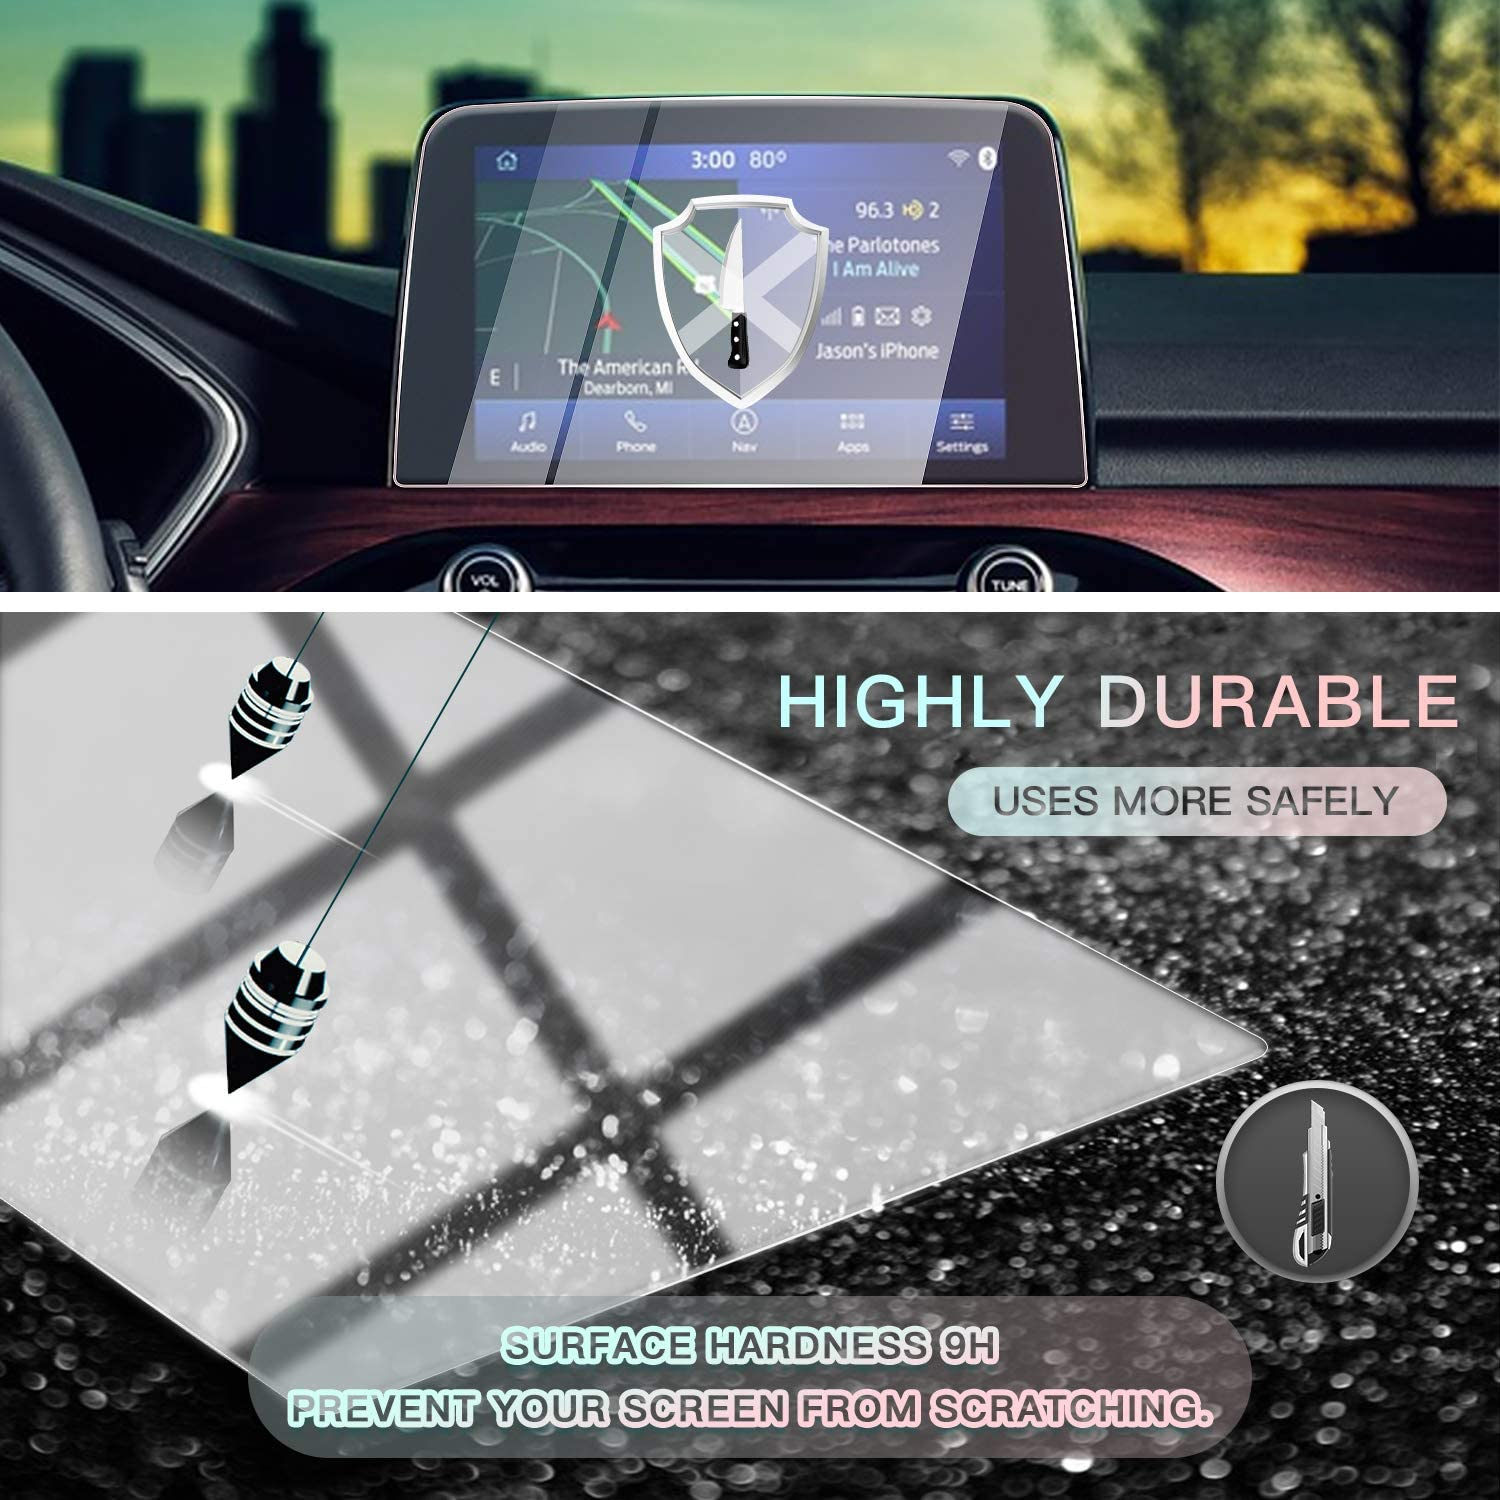 Tempered Glass HD Scratch Resistance Center Touch Protective Film CDEFG Glass Screen Protector for 2020 Escape 8 Inch Navigation Touch Screen Protector